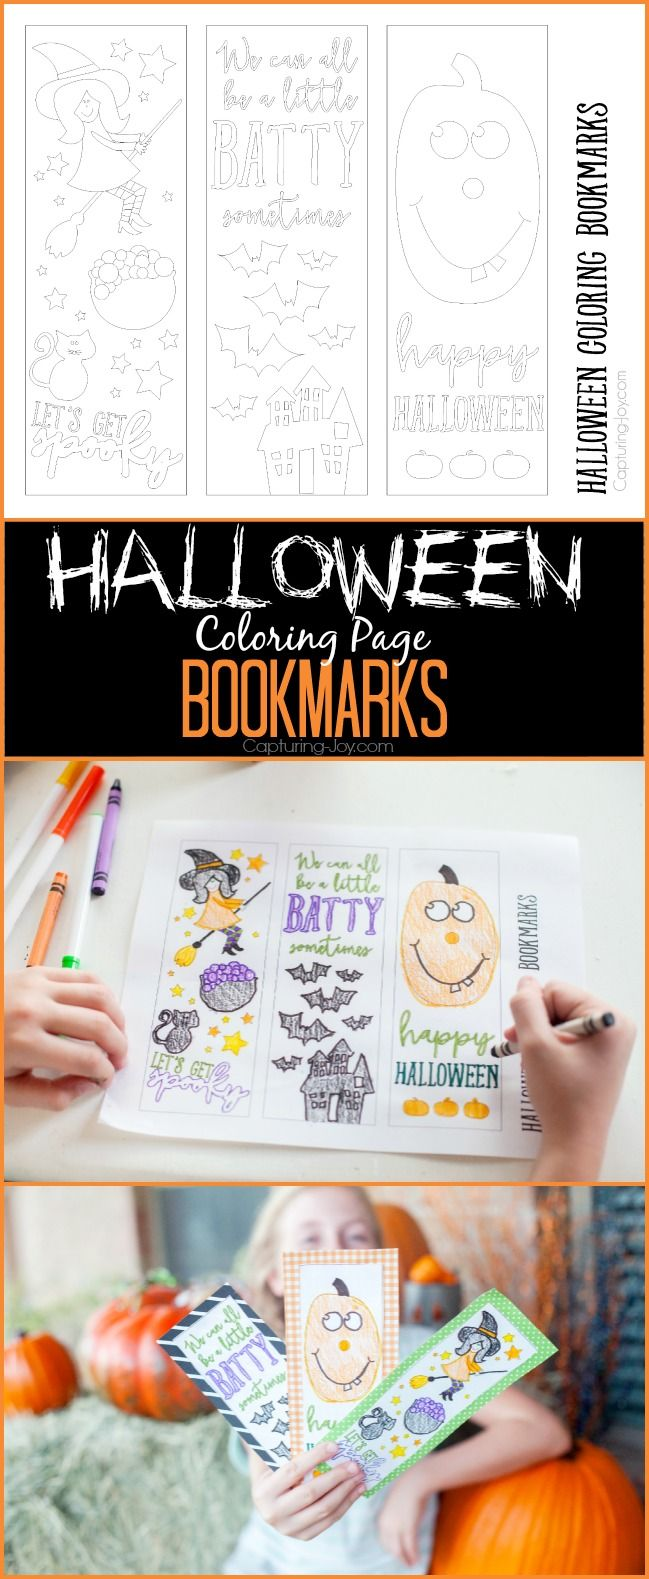 Halloween Coloring Page: Free Halloween  bookmarks on Capturing-Joy.com!